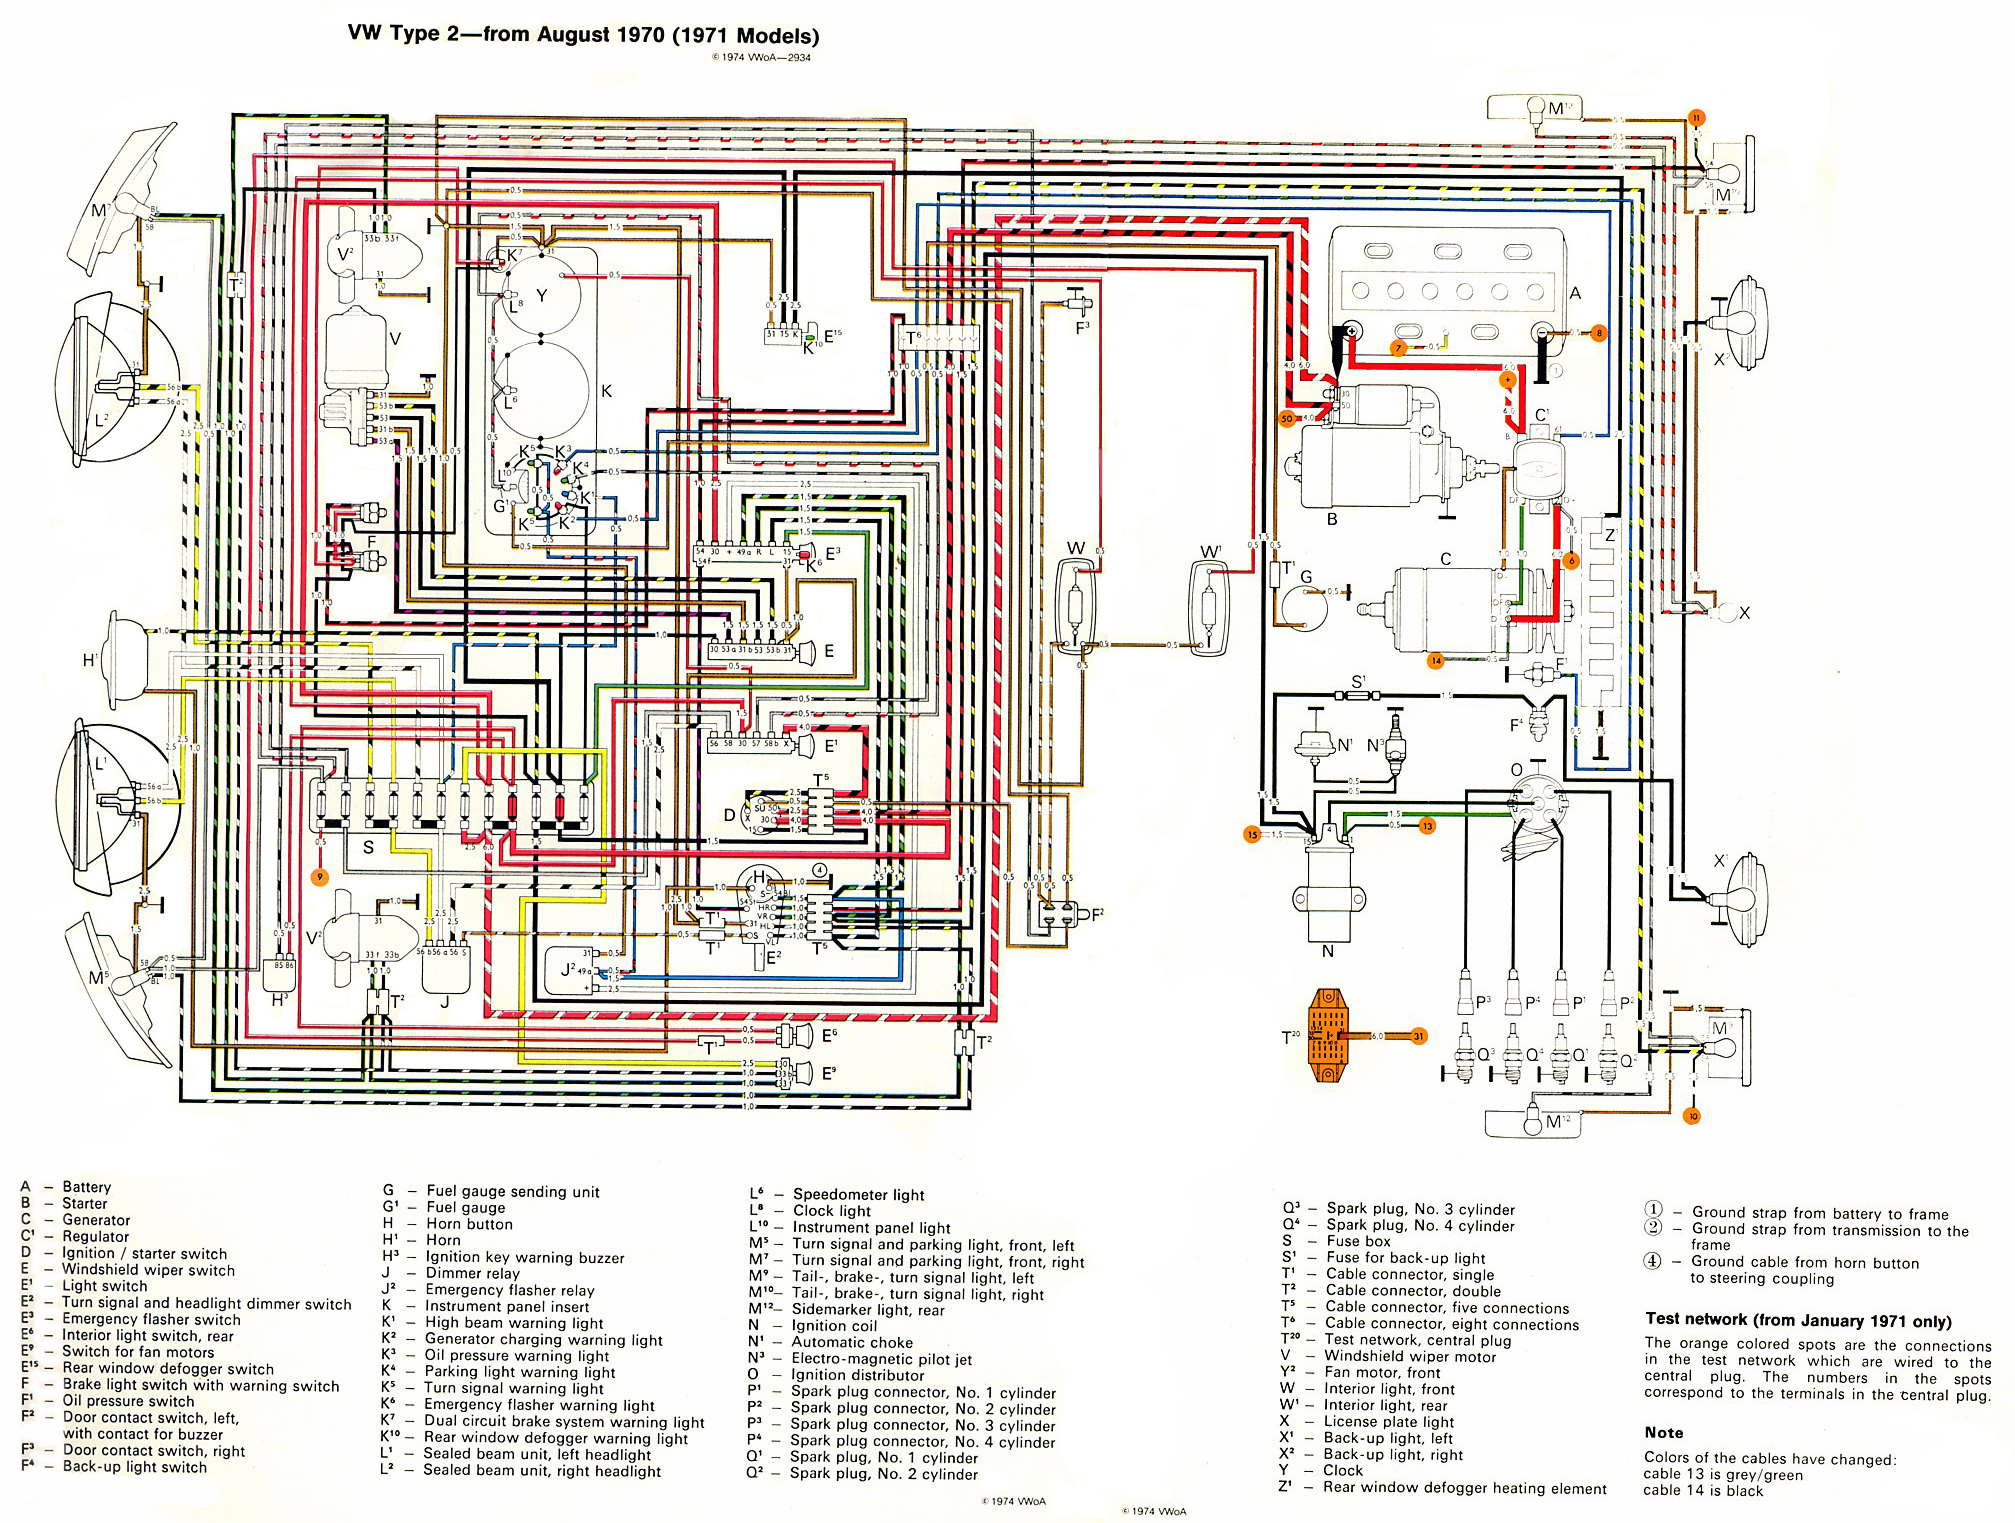 baybus_71_fixed vw t4 horn wiring diagram efcaviation com vw t4 fuse box wiring diagram at cos-gaming.co